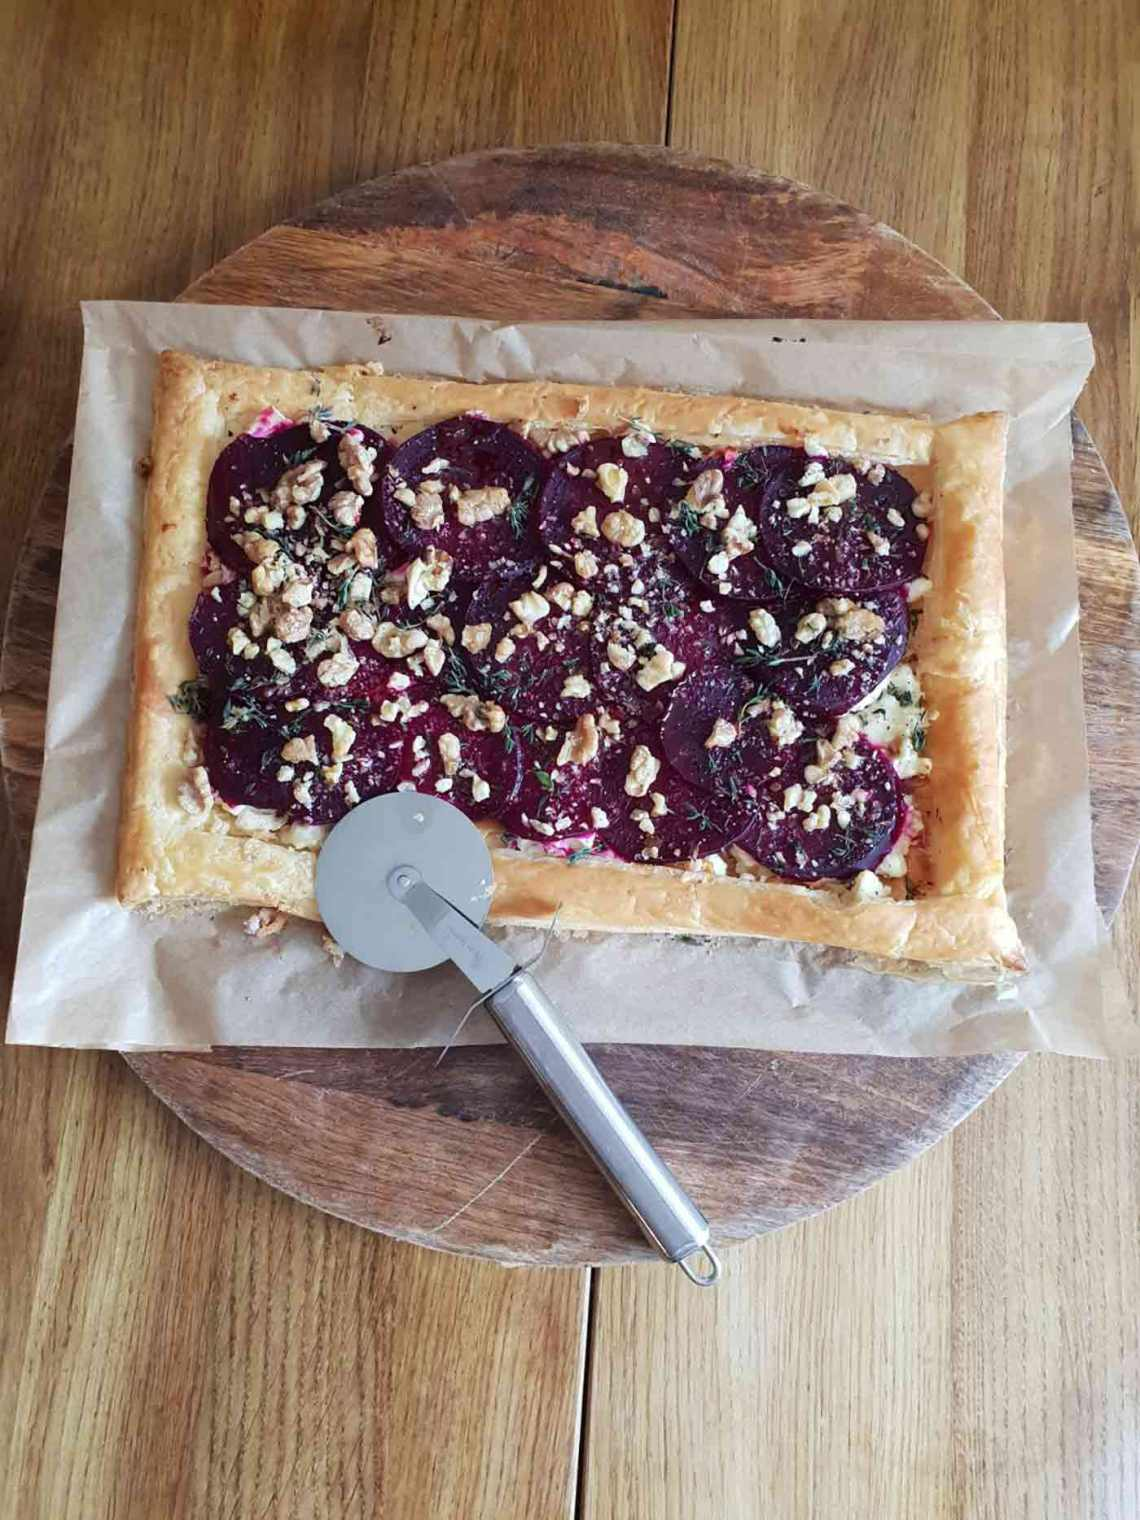 A beetroot and feta tart served on a round wooden board.